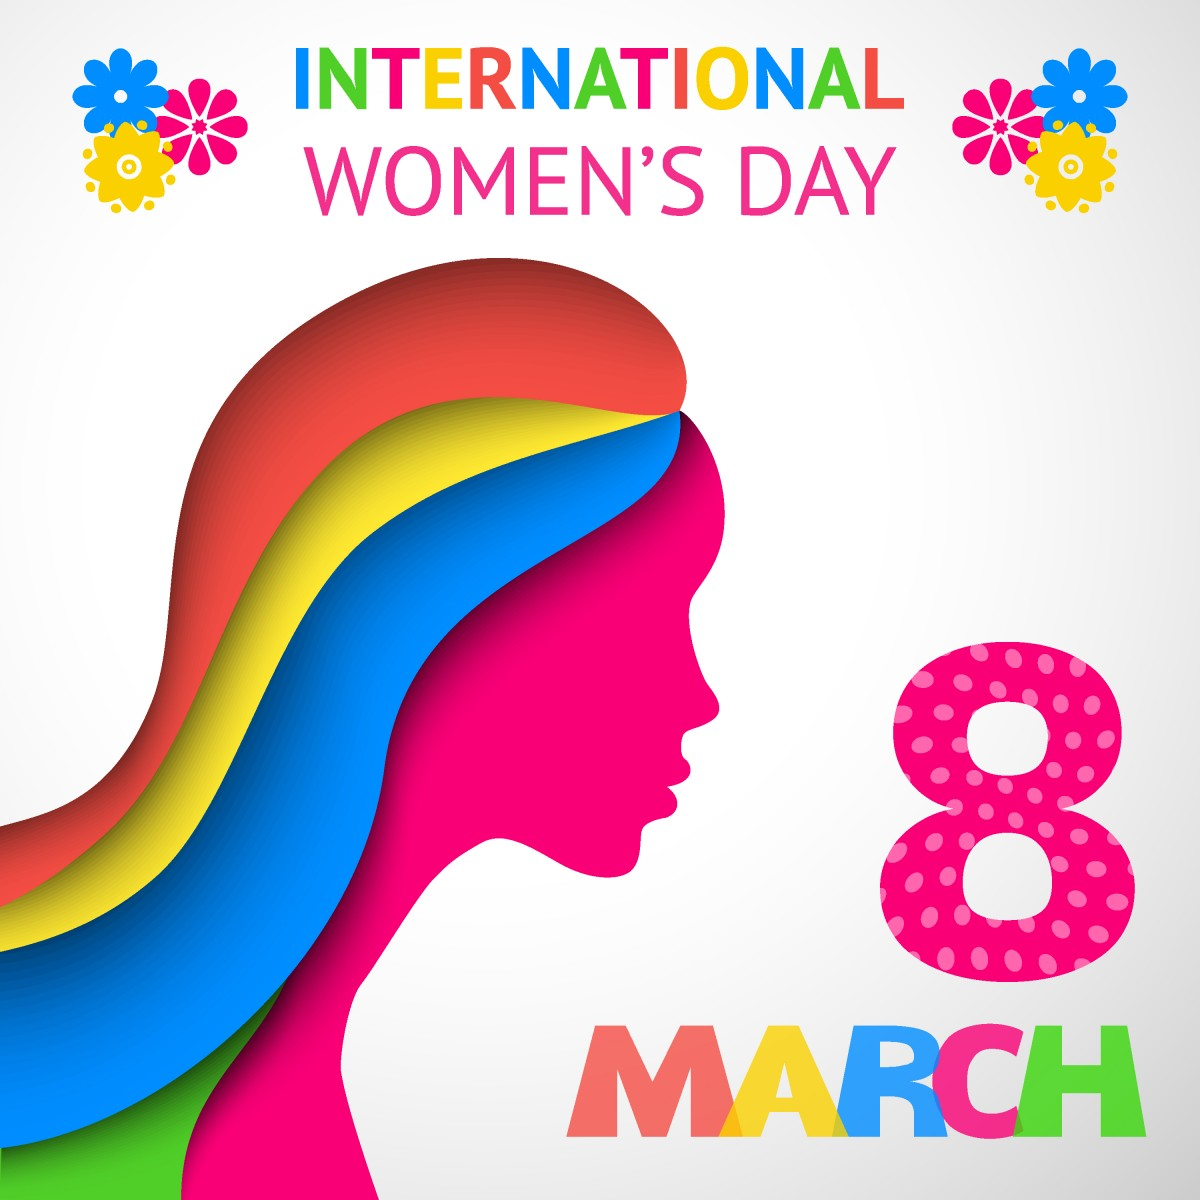 International Women S Day Quotes: Top 25 Cute Awesome Inspirational Happy International